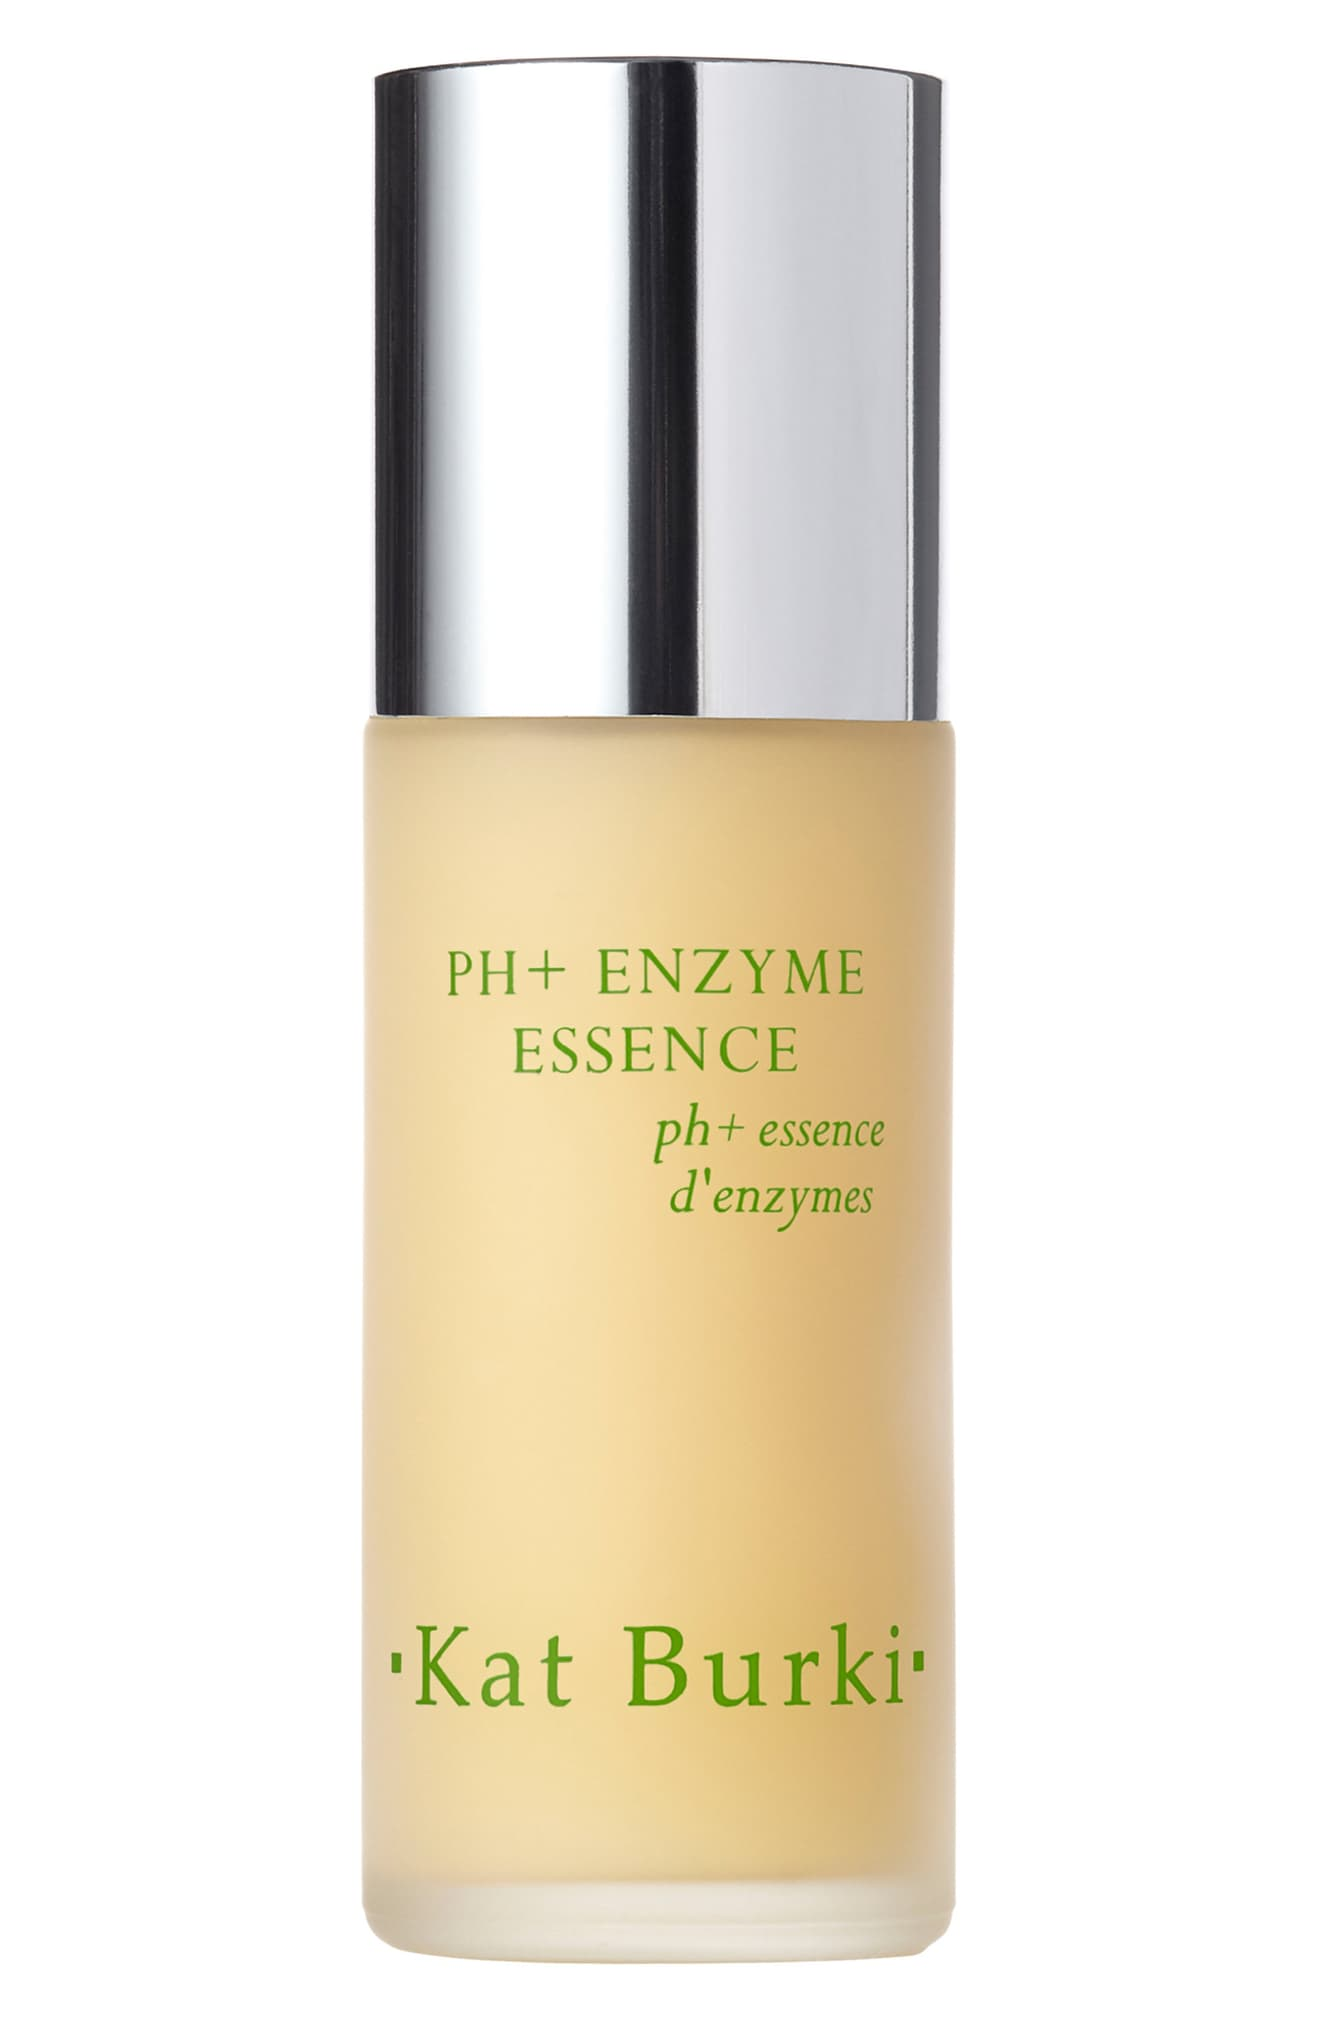 KAT BURKI Ph + Enzyme Essence